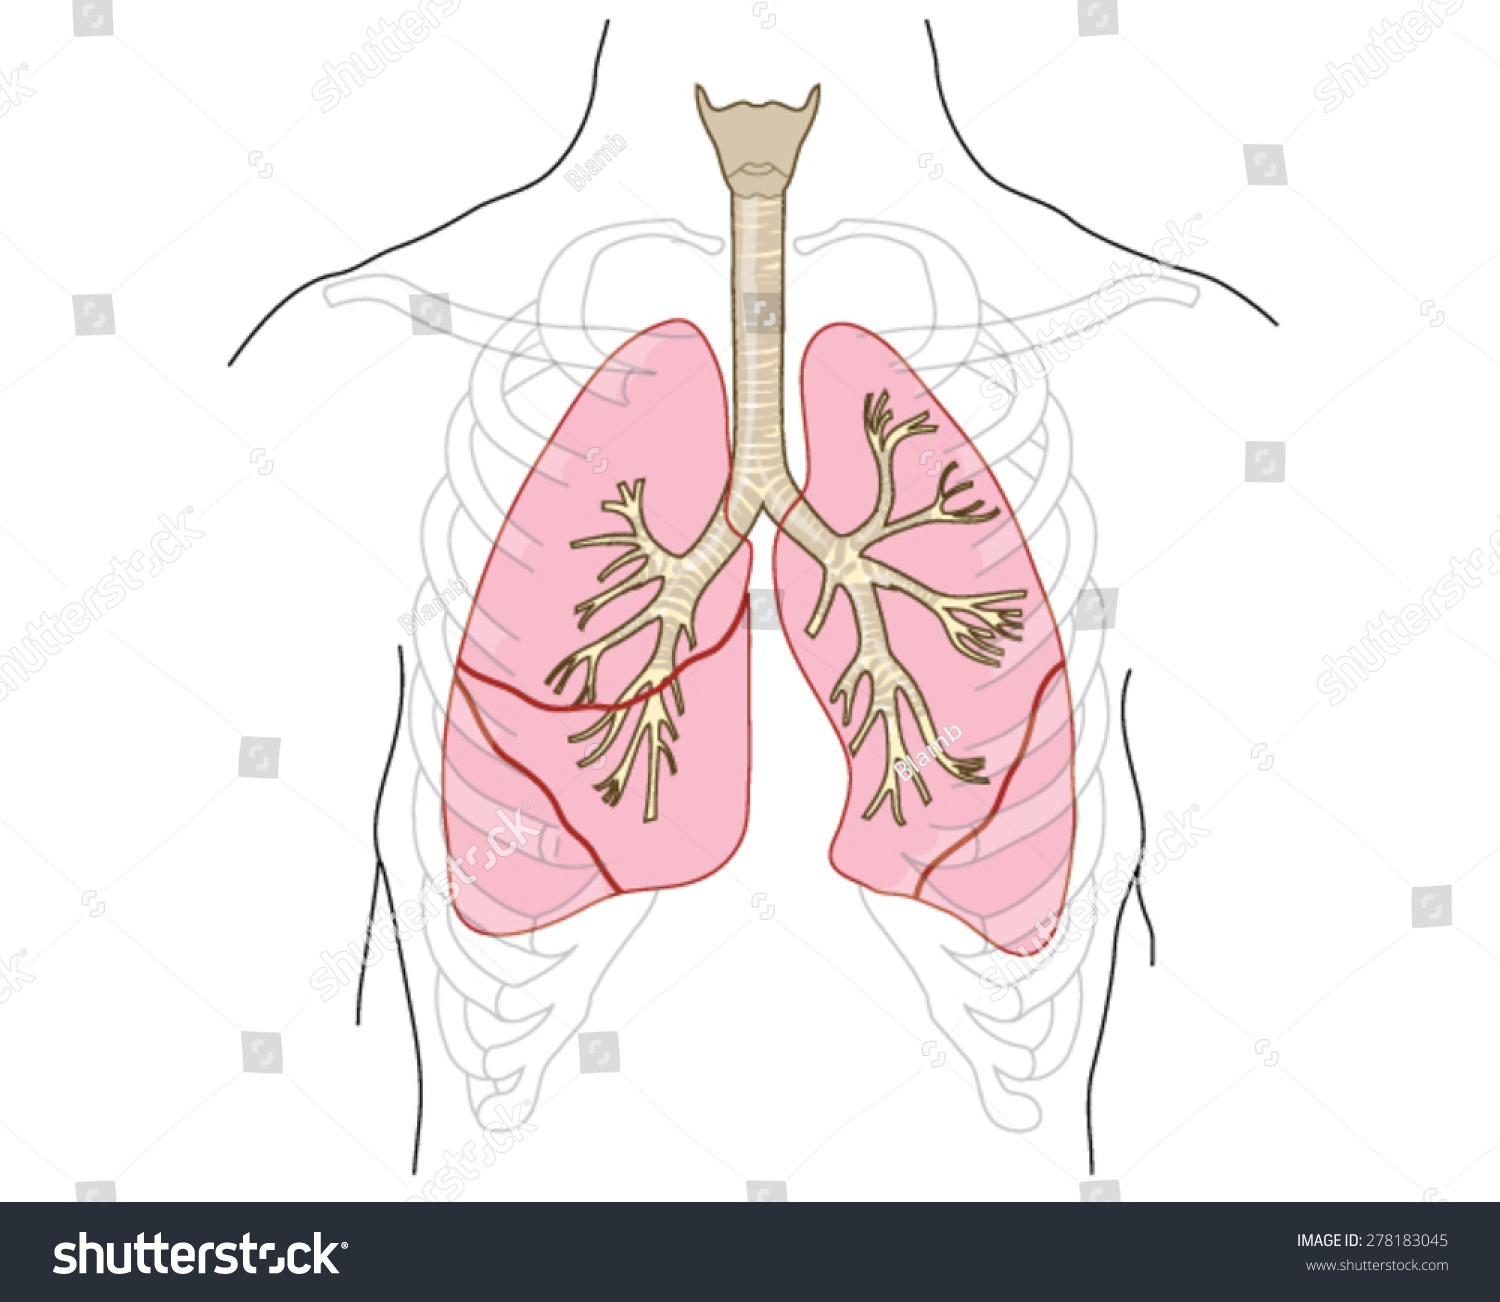 Drawing Lungs Trachea Bronchi Bronchioles Chest Stock Photo (Photo ...